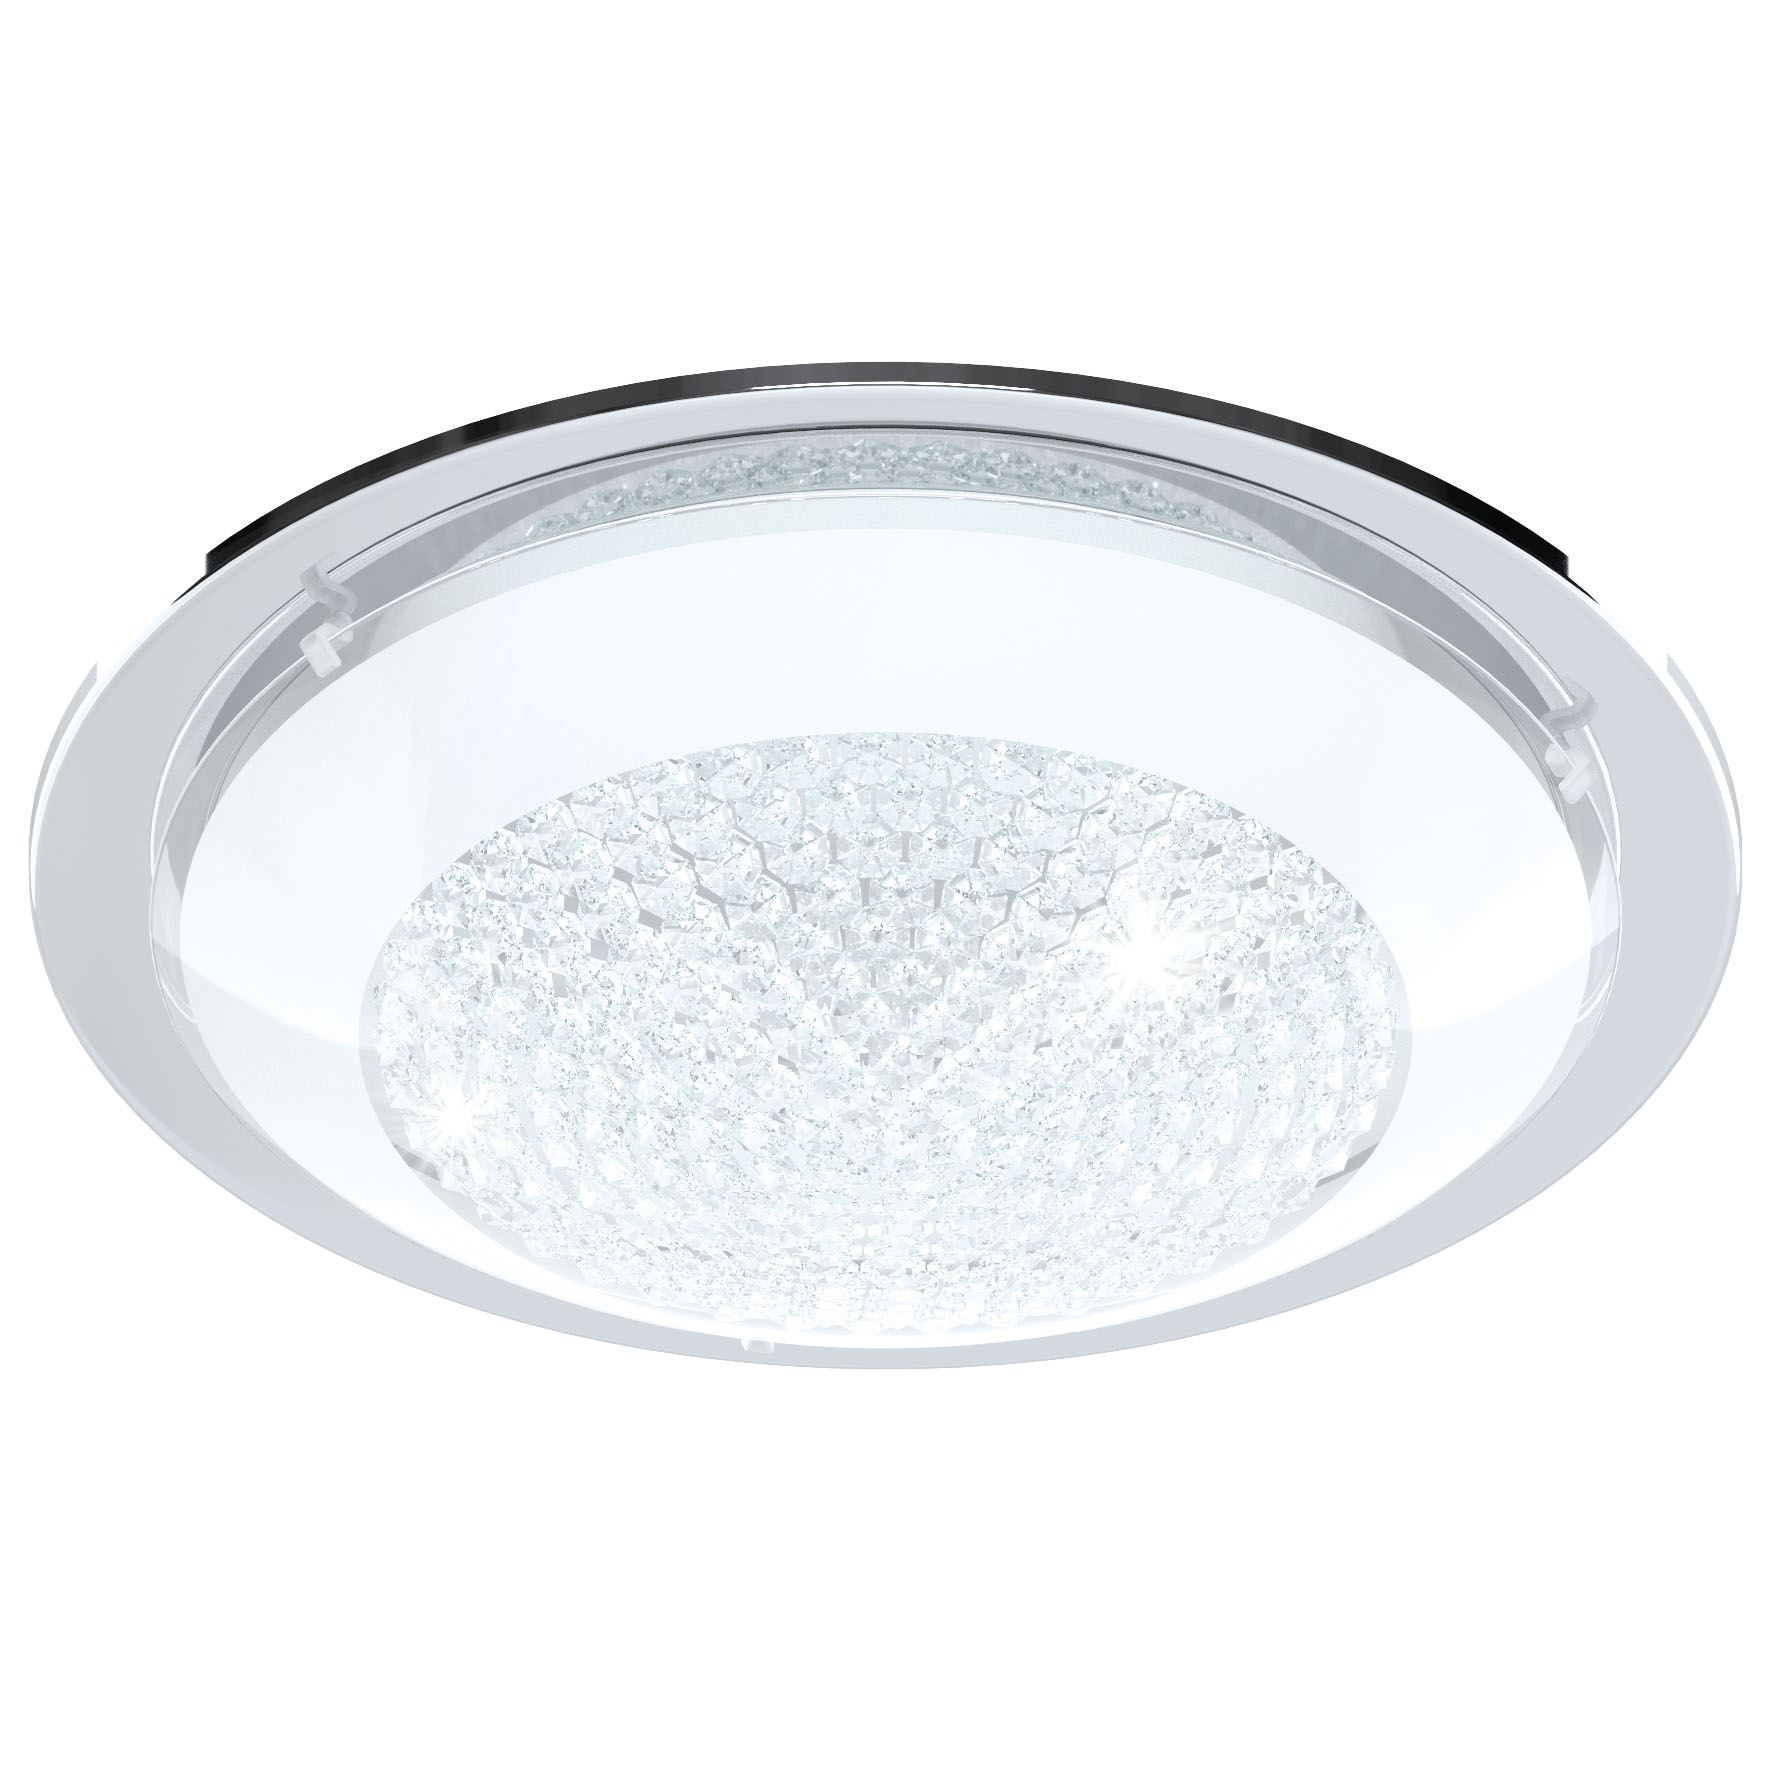 Acolla LED Ceiling Light Glass Crystals Chrome White Clear Dia 370 mm